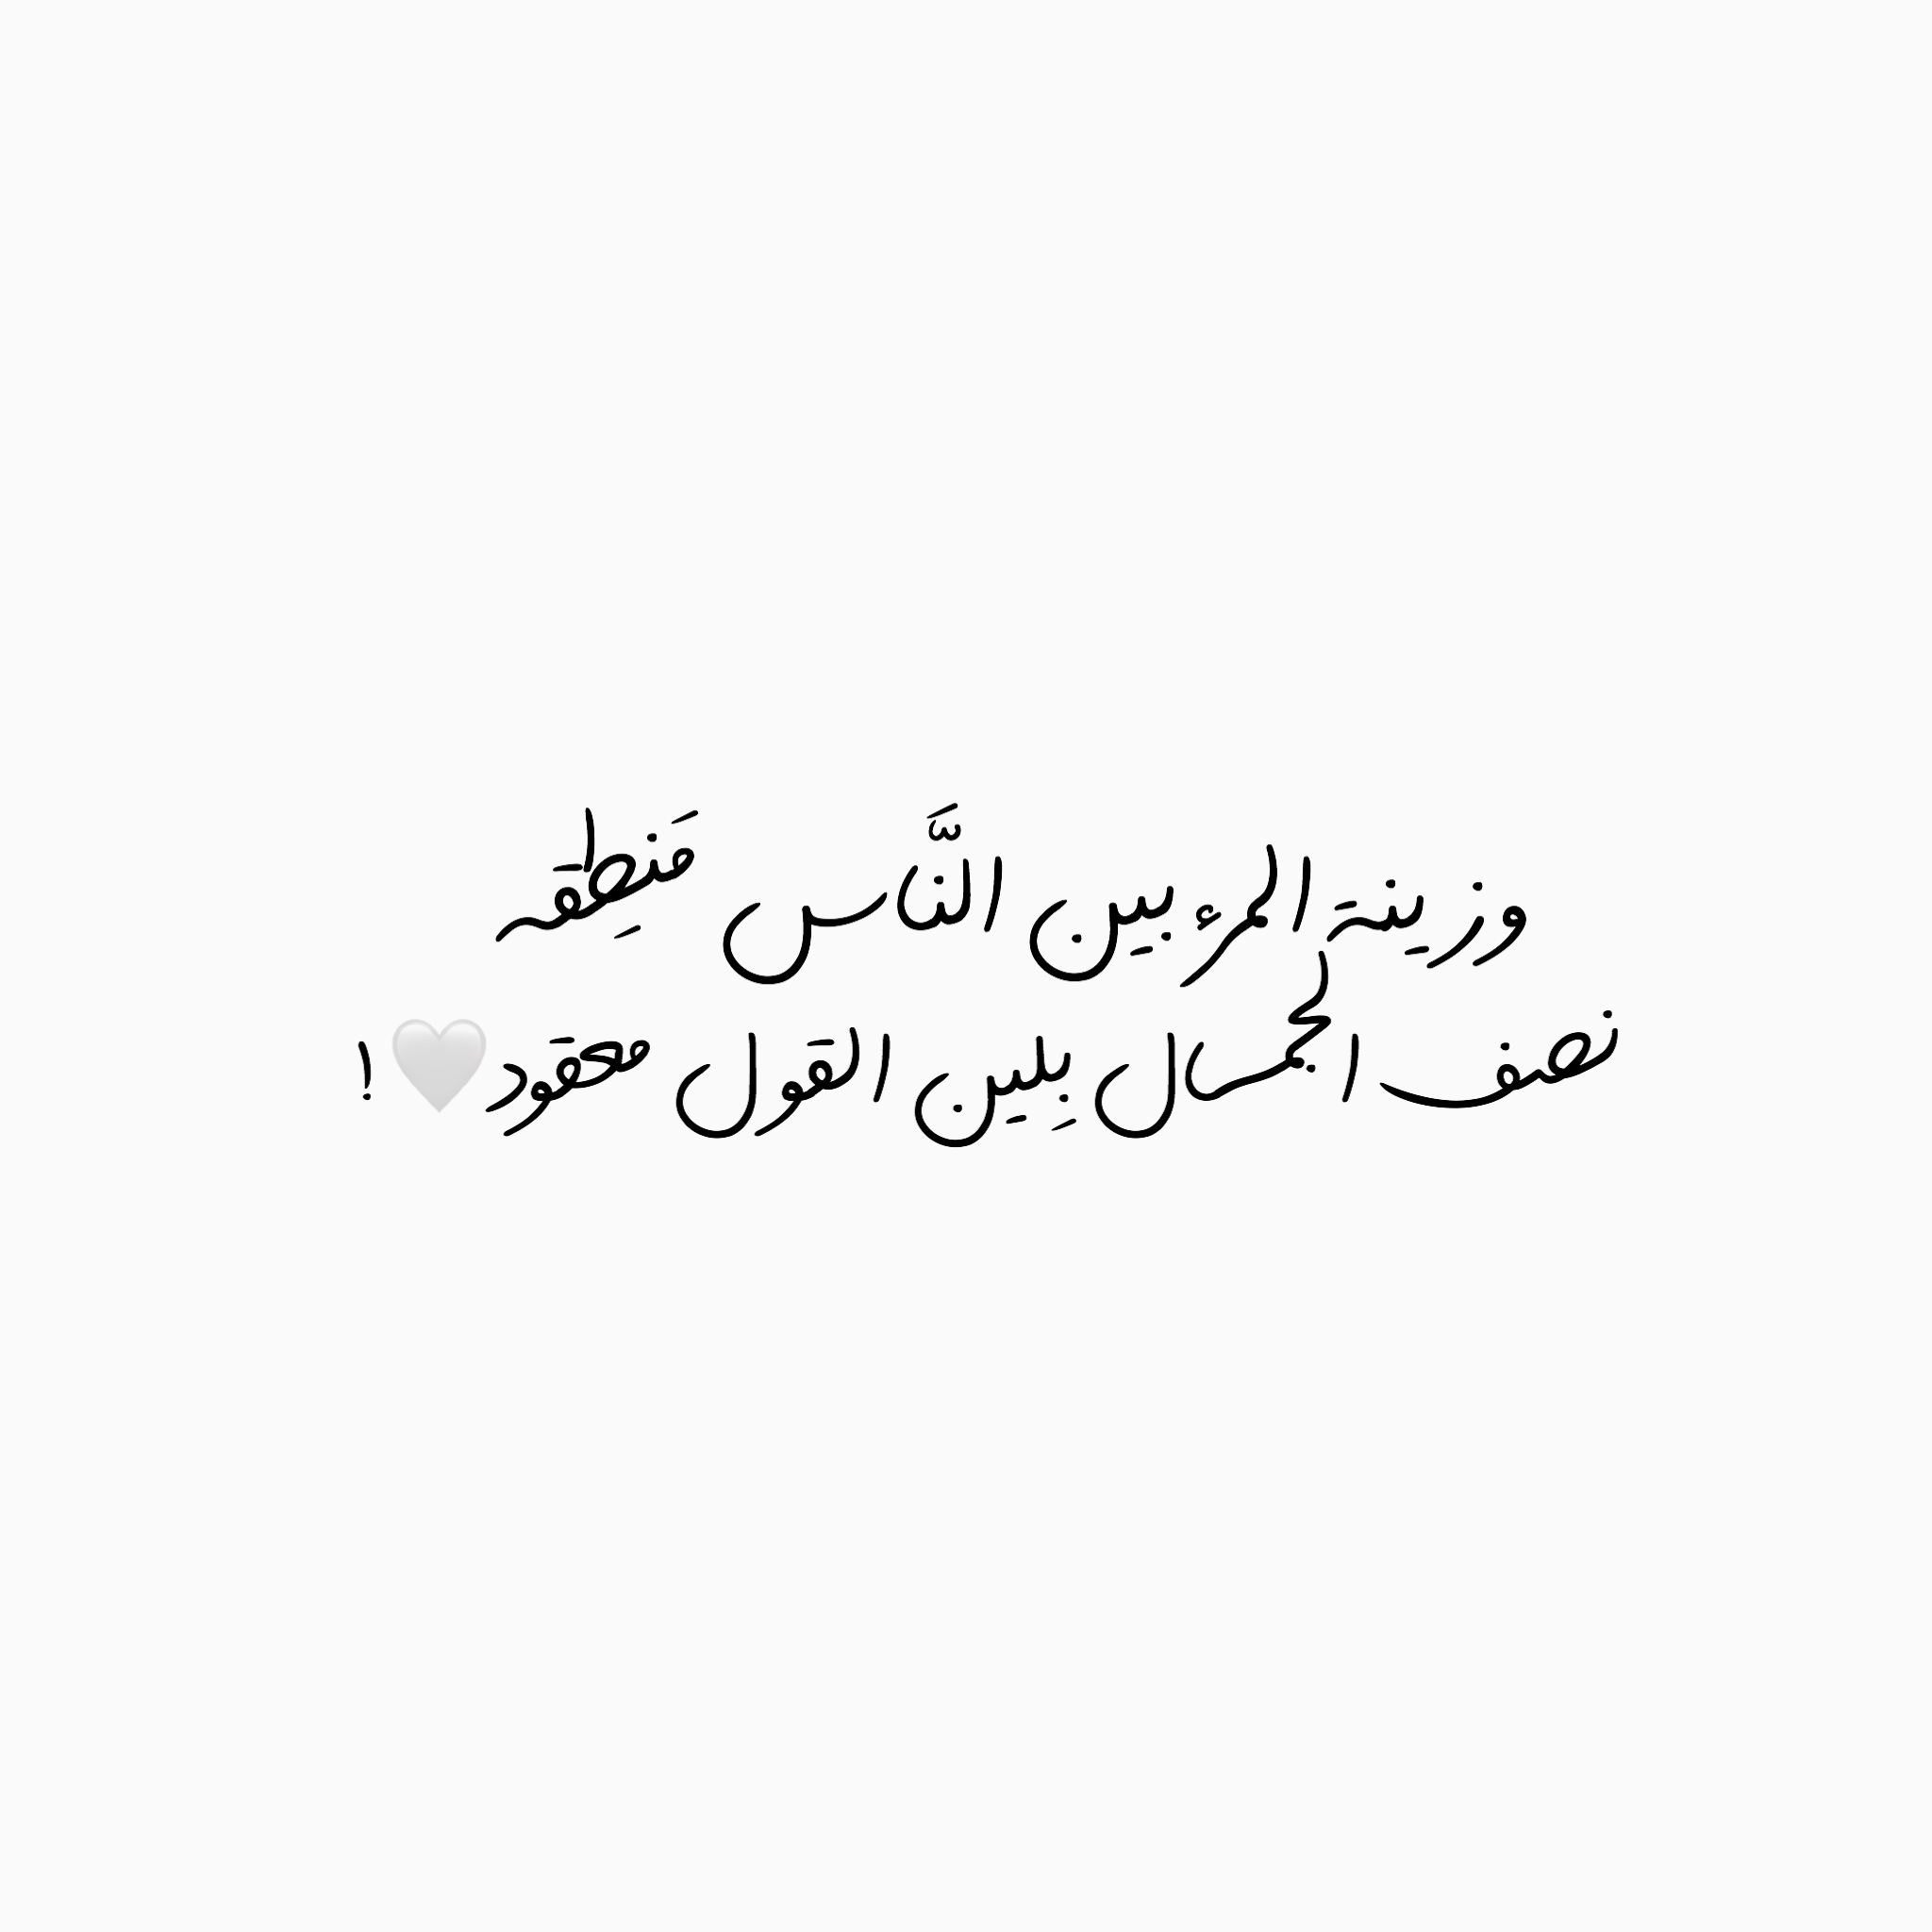 Twitter Smai9x Words Quotes Beautiful Arabic Words Photo Quotes